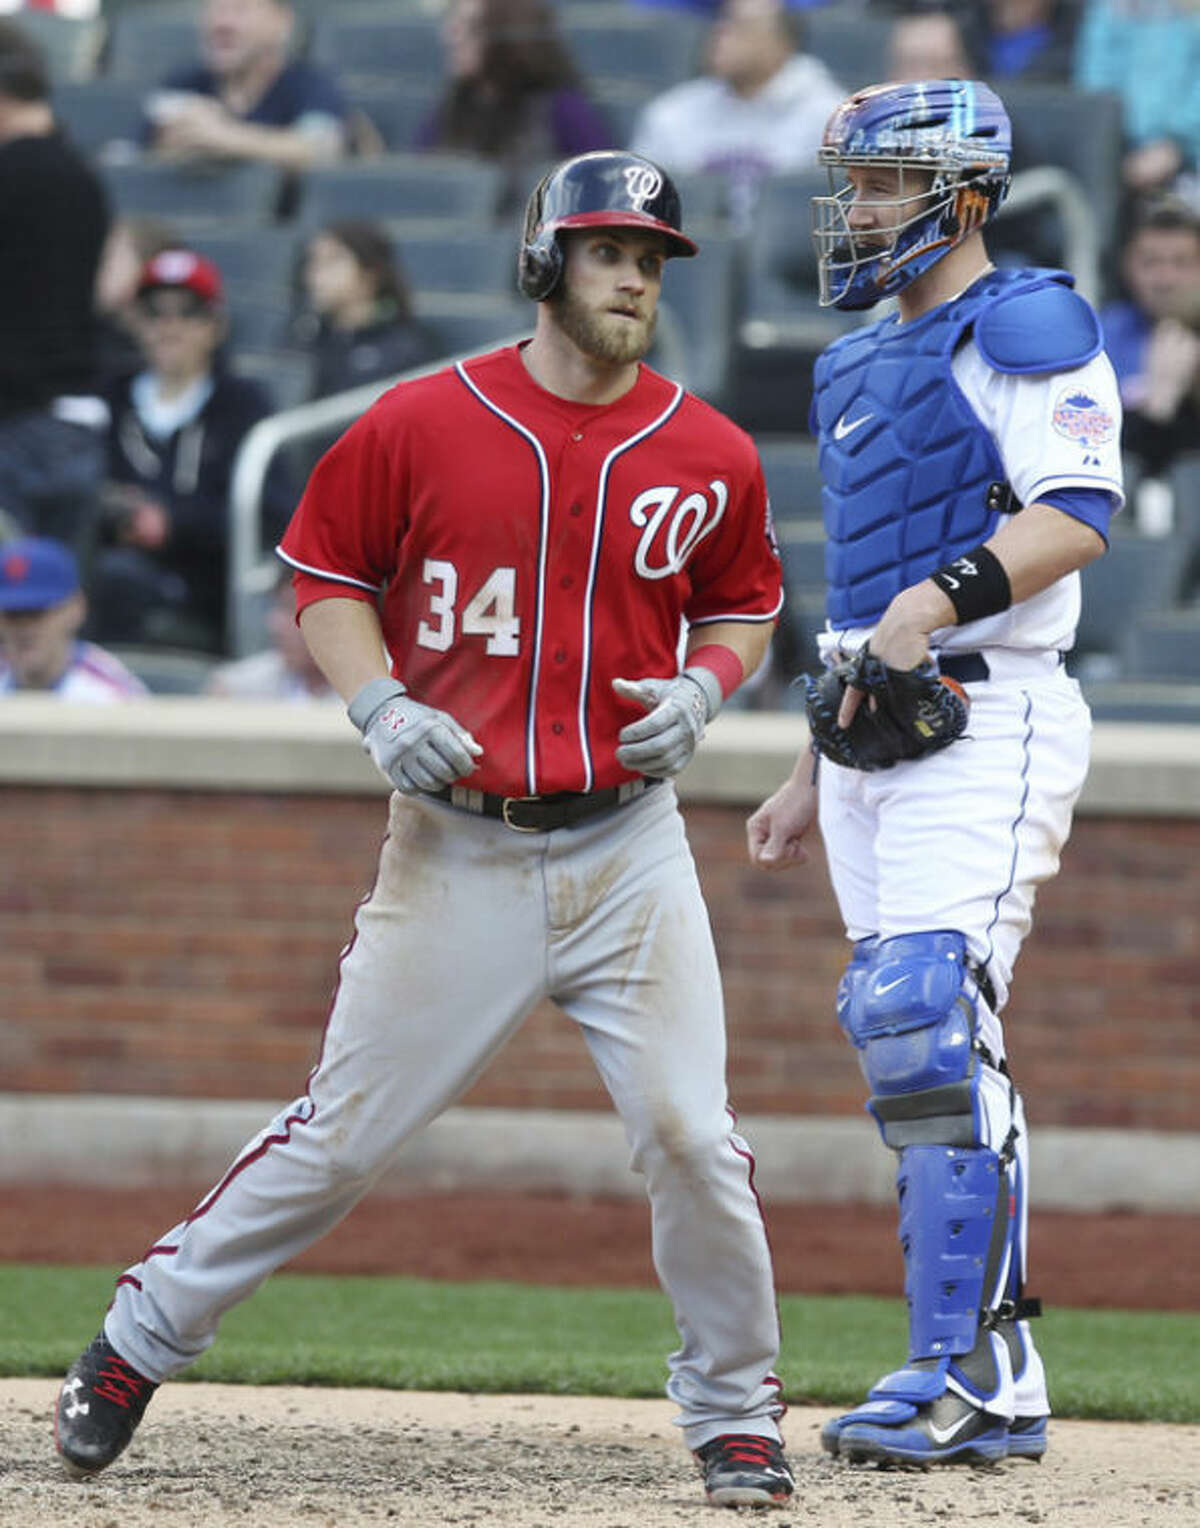 Washington Nationals Bryce Harper, left, crosses home plate near New York Mets catcher John Buck after hitting a solo home run in the eighth inning of a baseball game in New York on Saturday, April 20, 2013. (AP Photo/Peter Morgan)